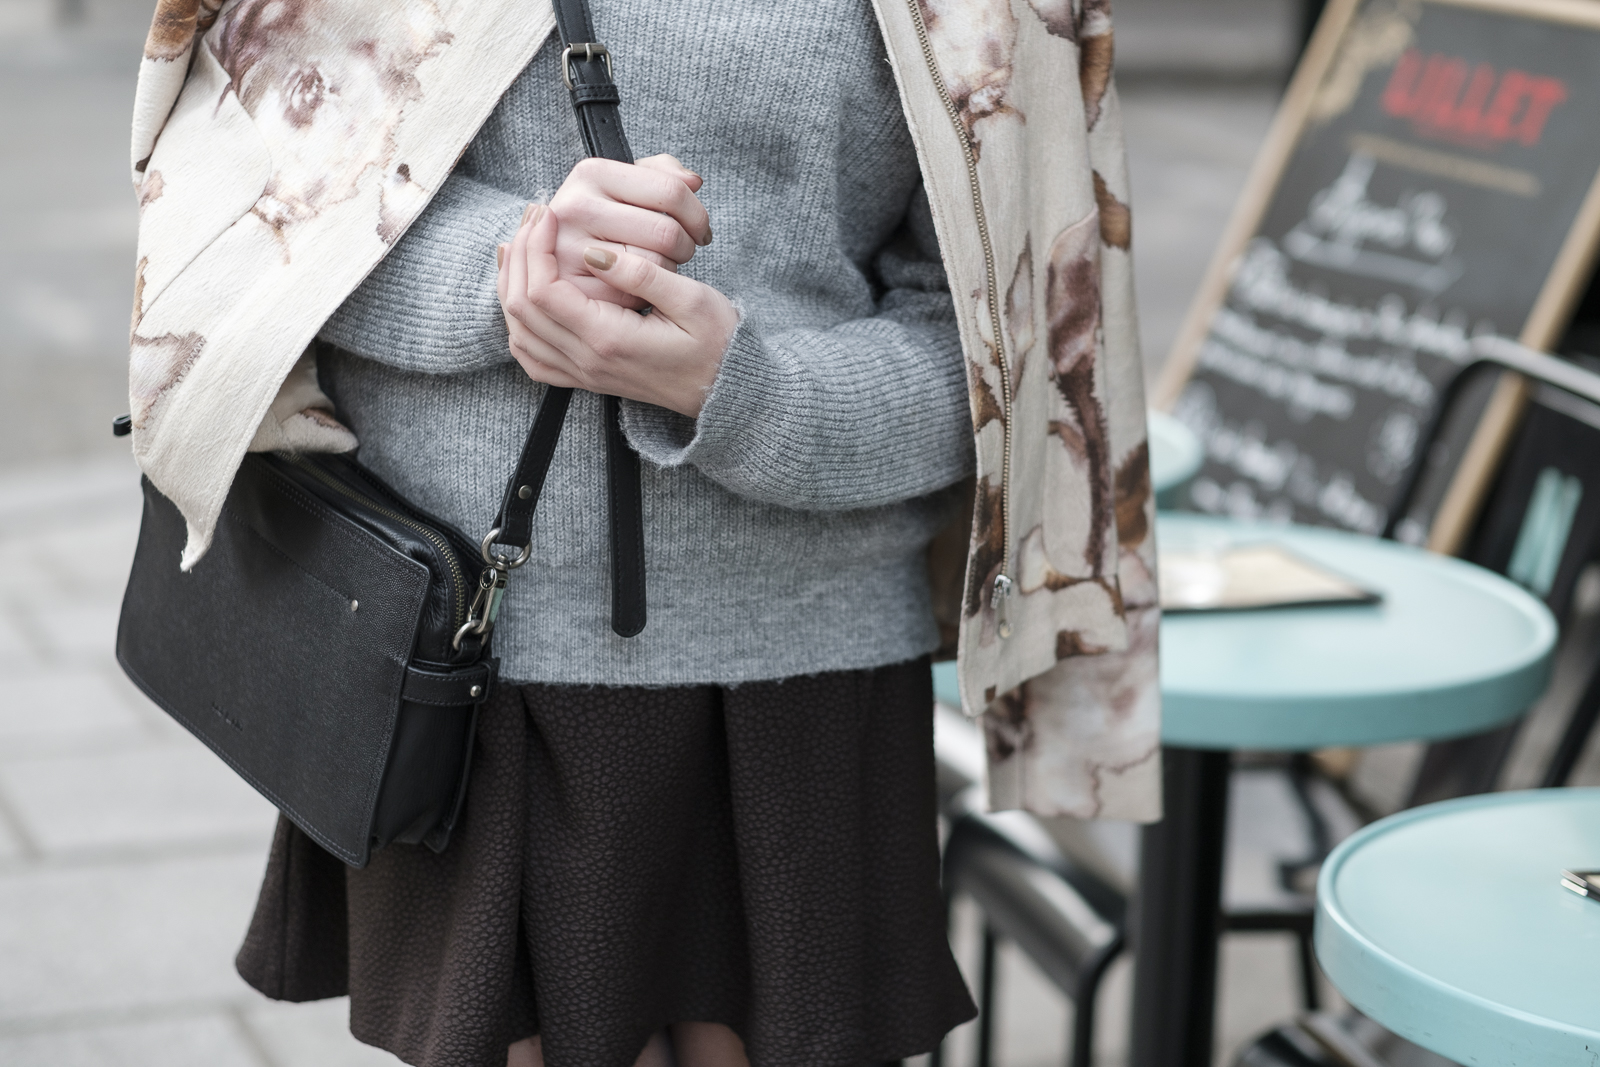 streetstyle-paris-fashion-blogger-detail-leather-bag